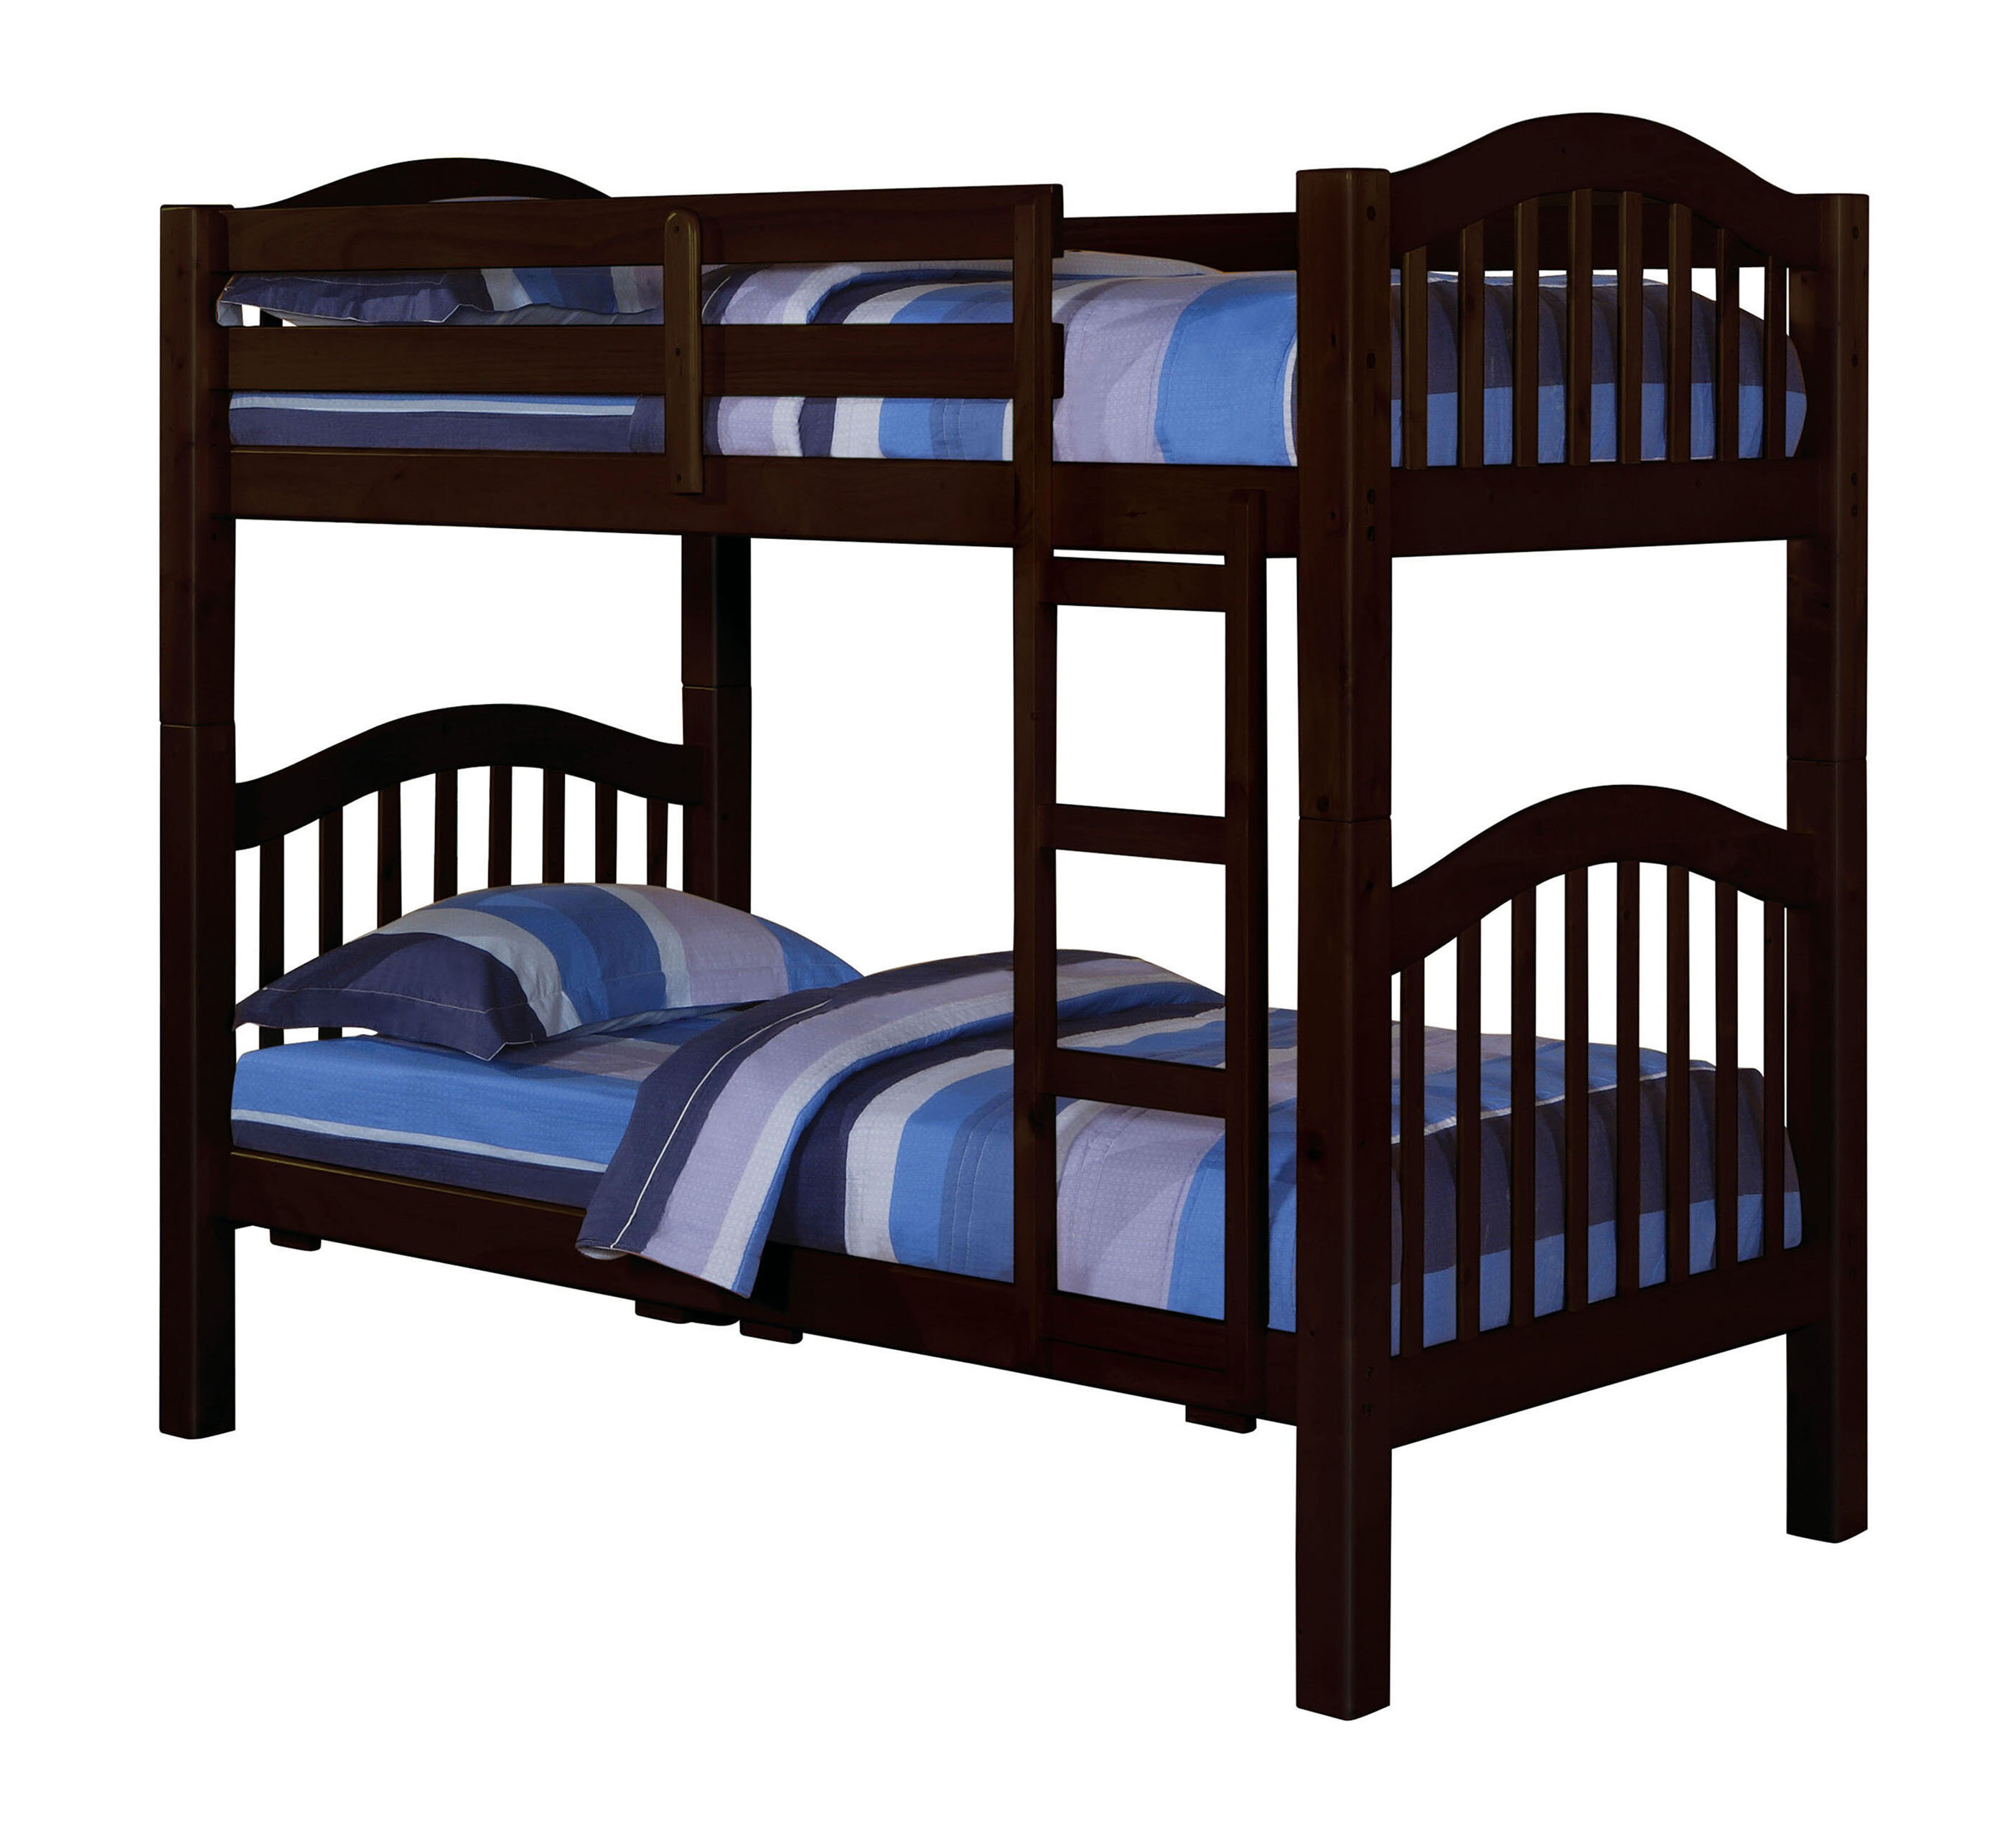 ACME Furniture Heartland Twin Over Bunk Bed Reviews